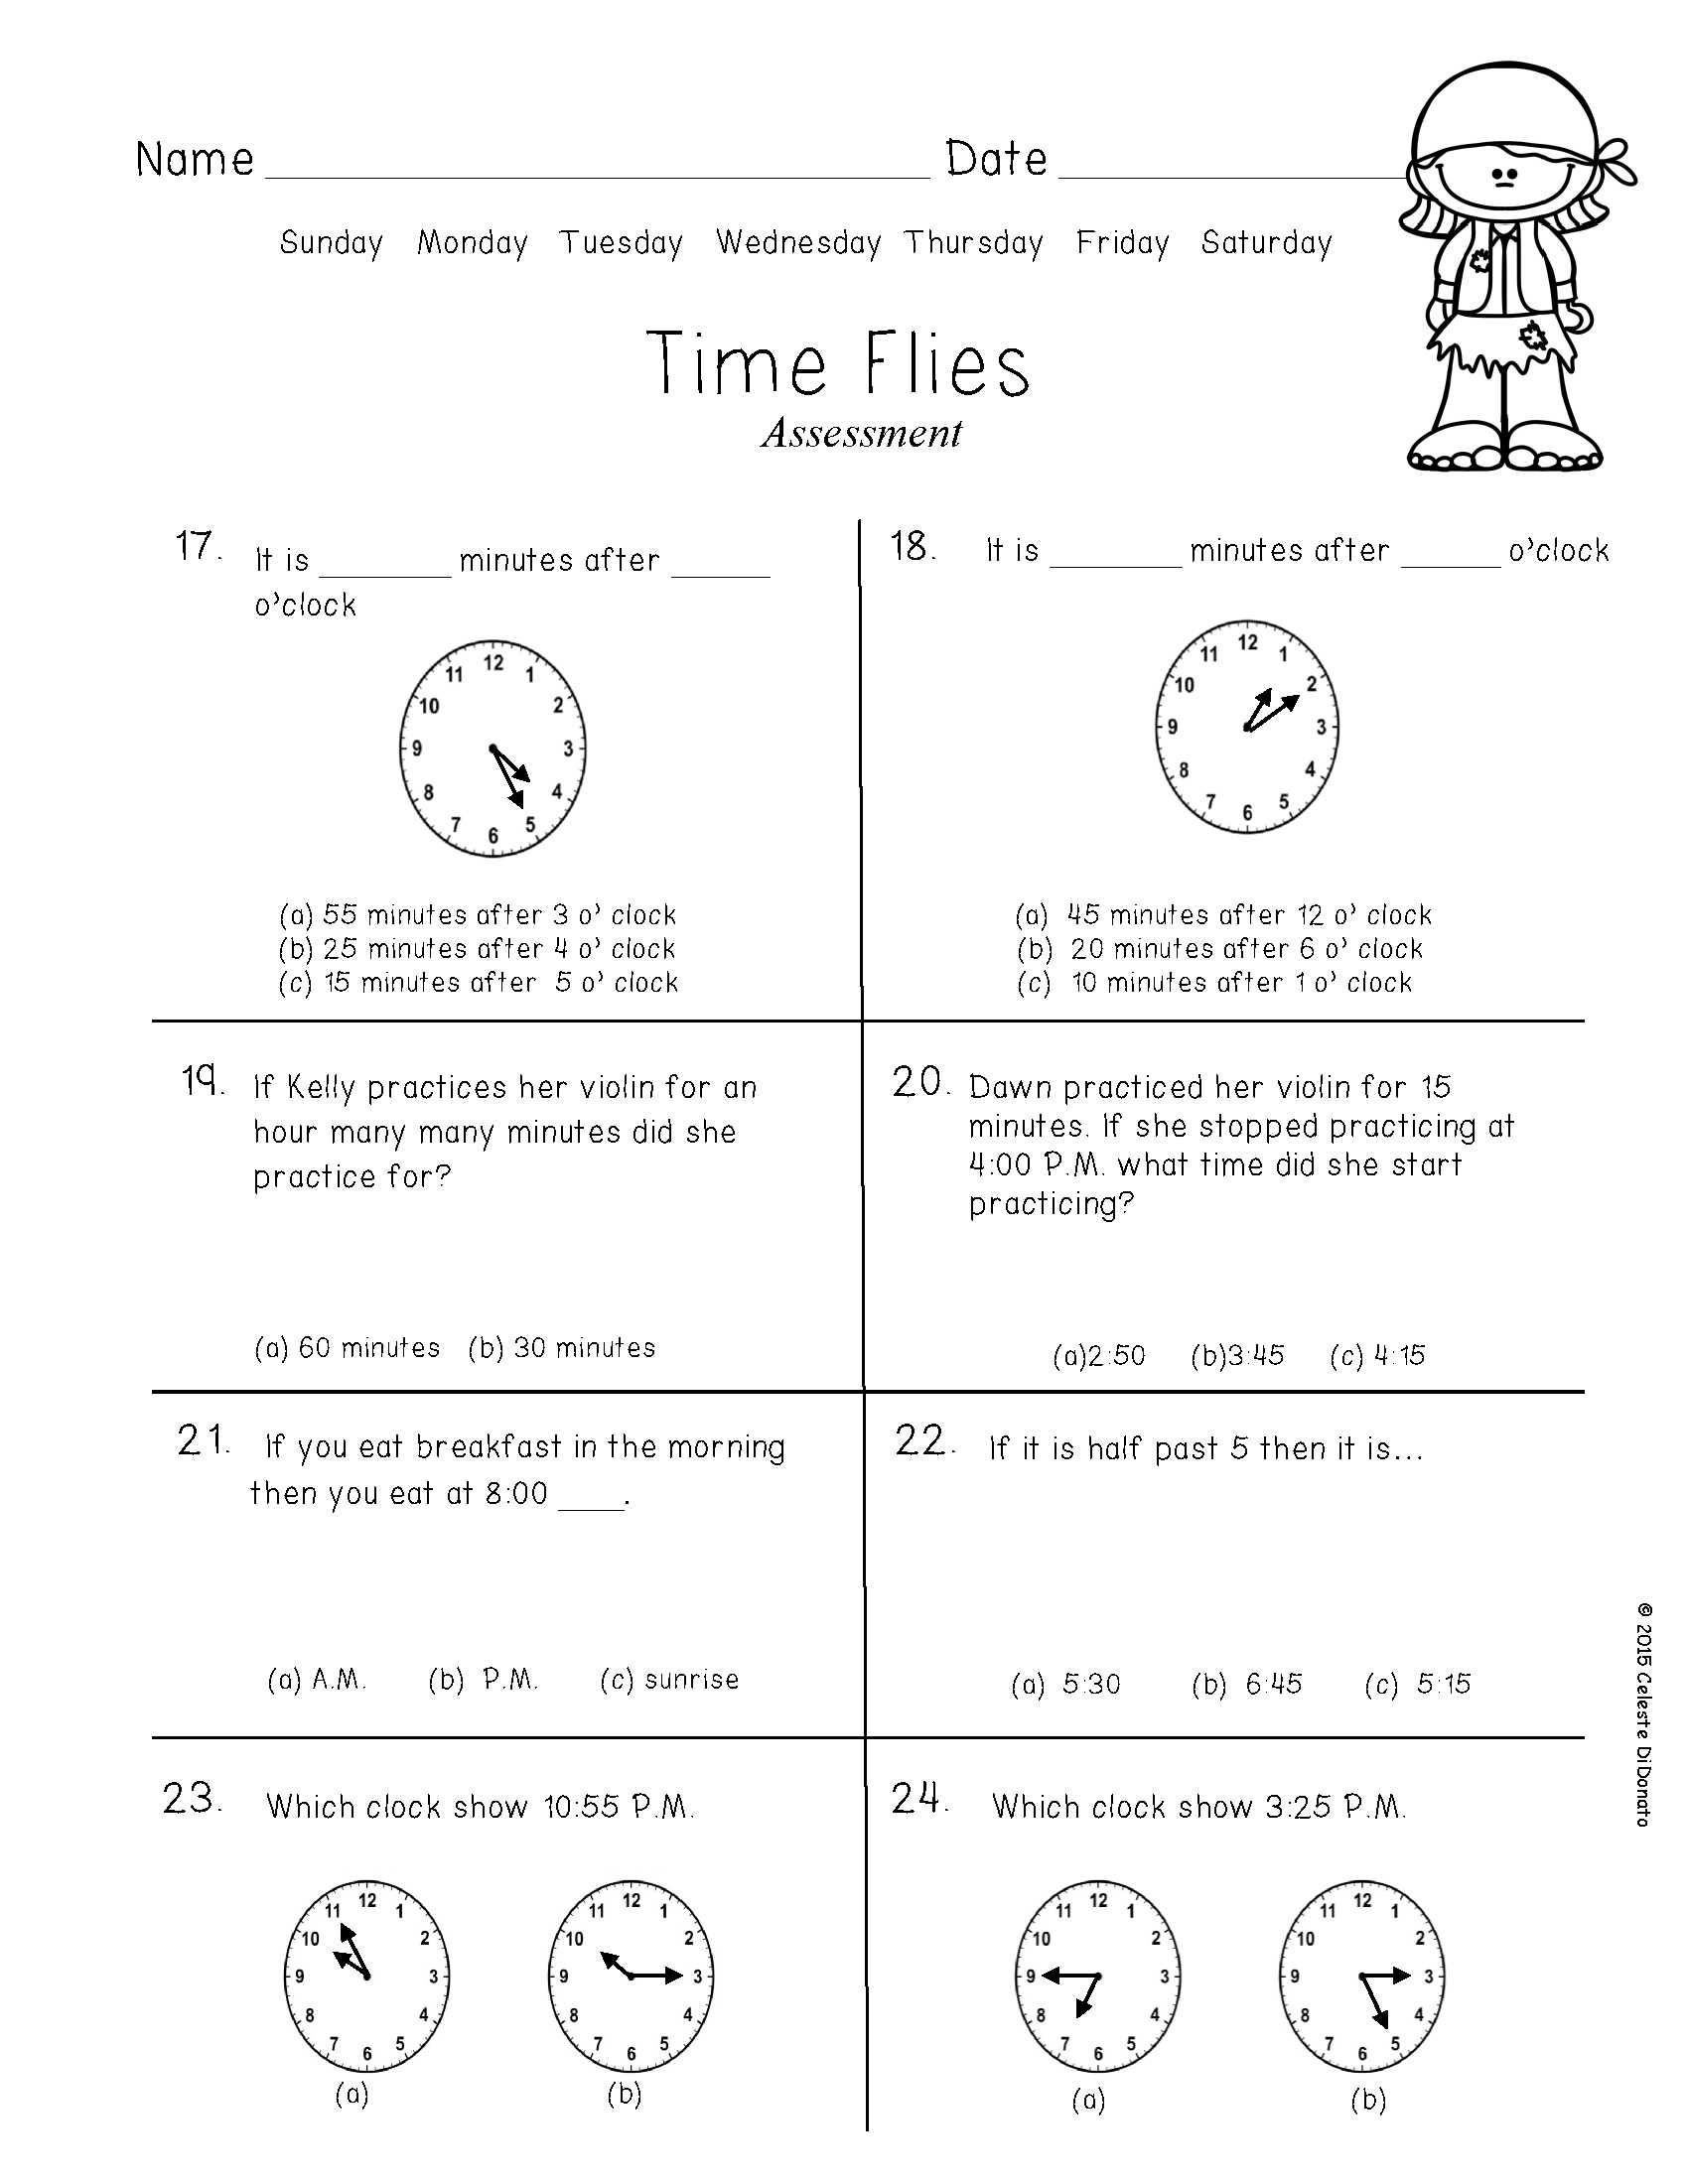 Clocks Pirates Printables And Centers Student Data Forms Math Anecdotal Notes [ 2200 x 1700 Pixel ]